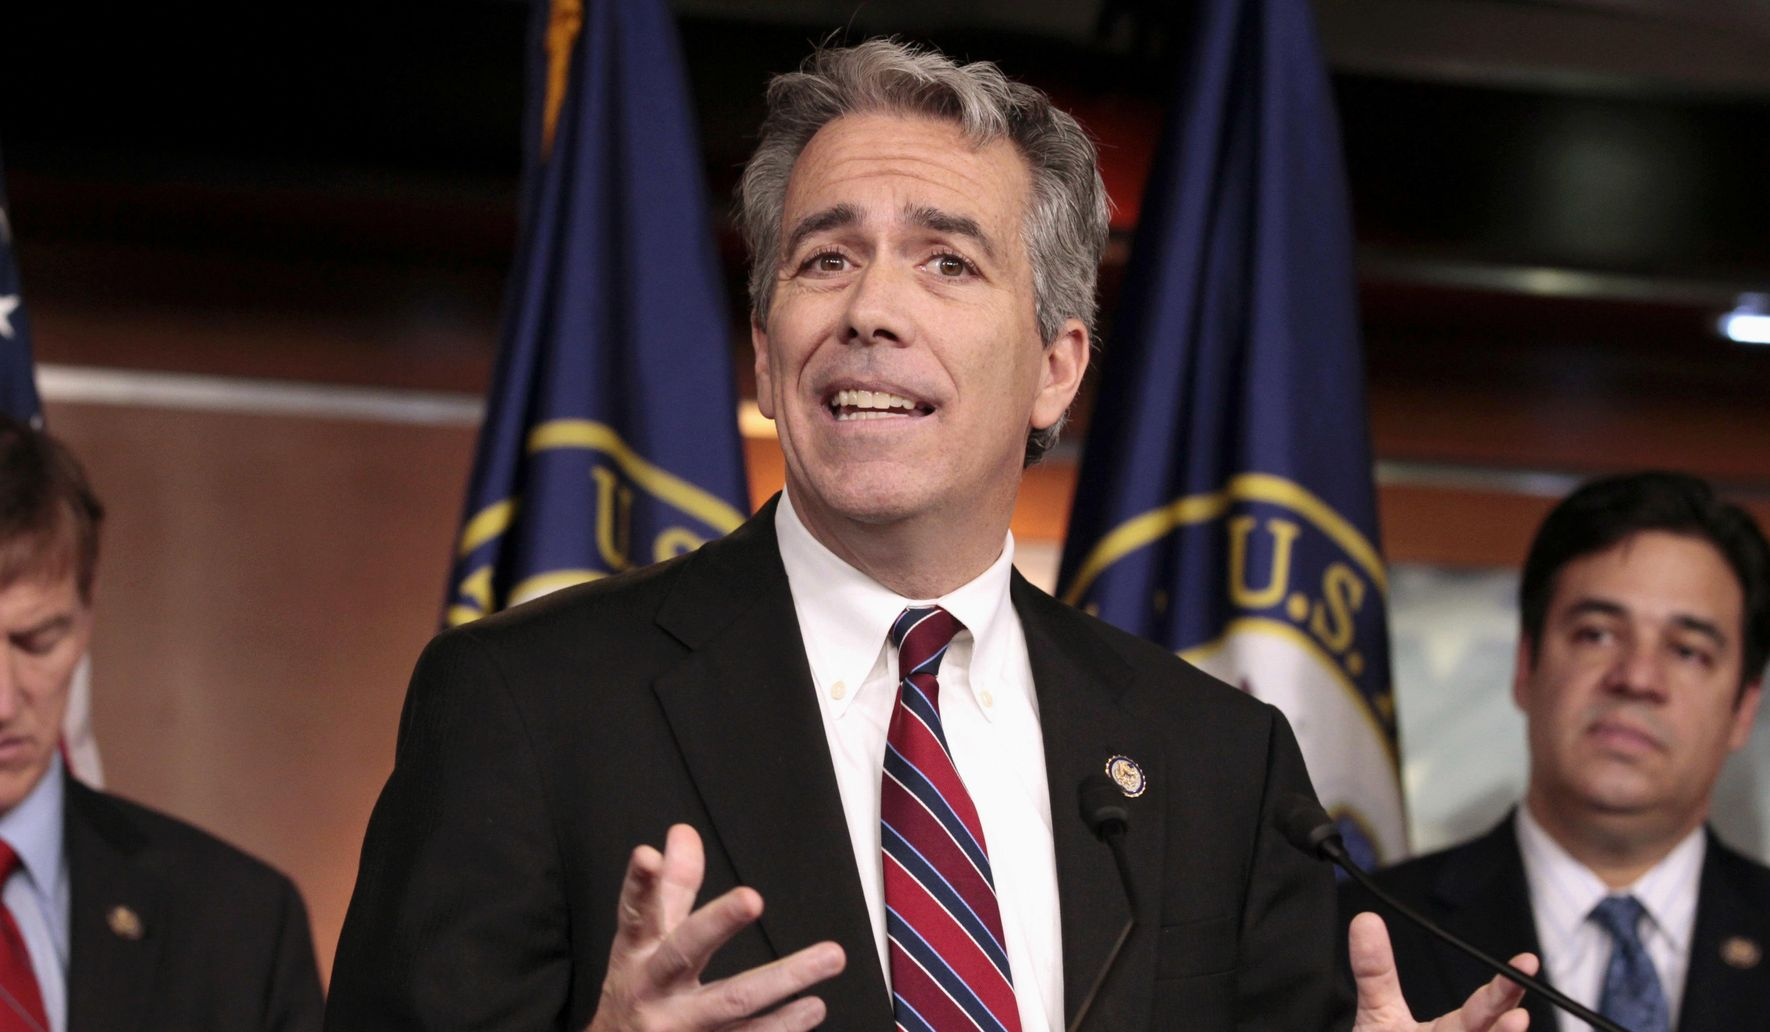 Joe Walsh says Trump 'mentally unfit' for office: 'He's sick'